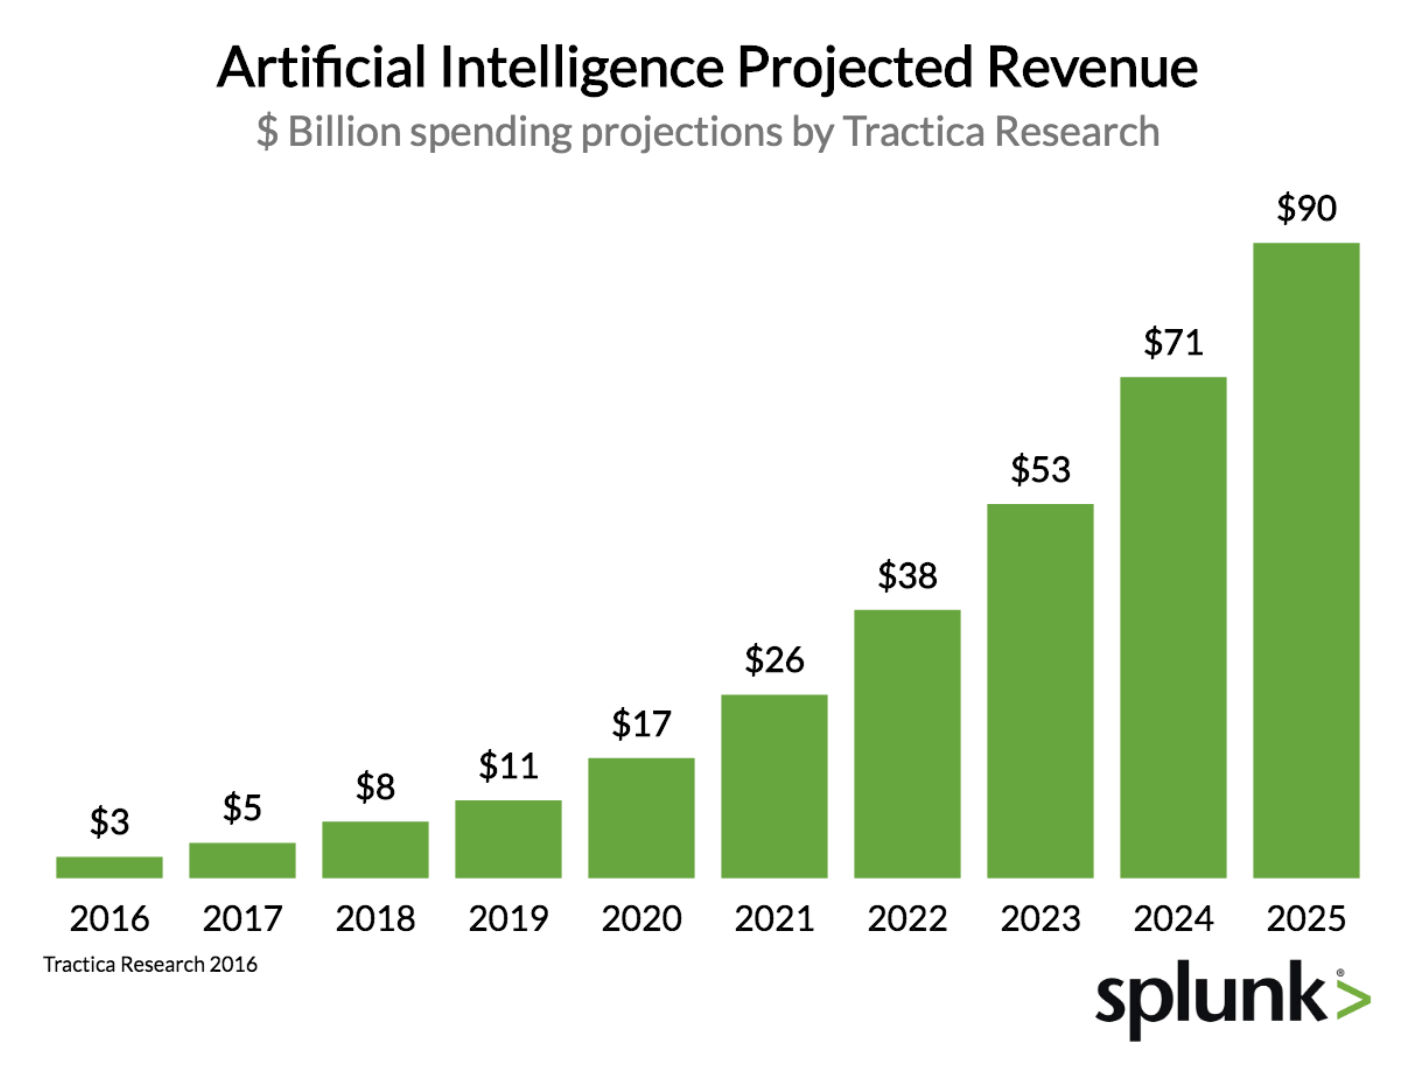 AI projected revenue growth from 2016 to 2025